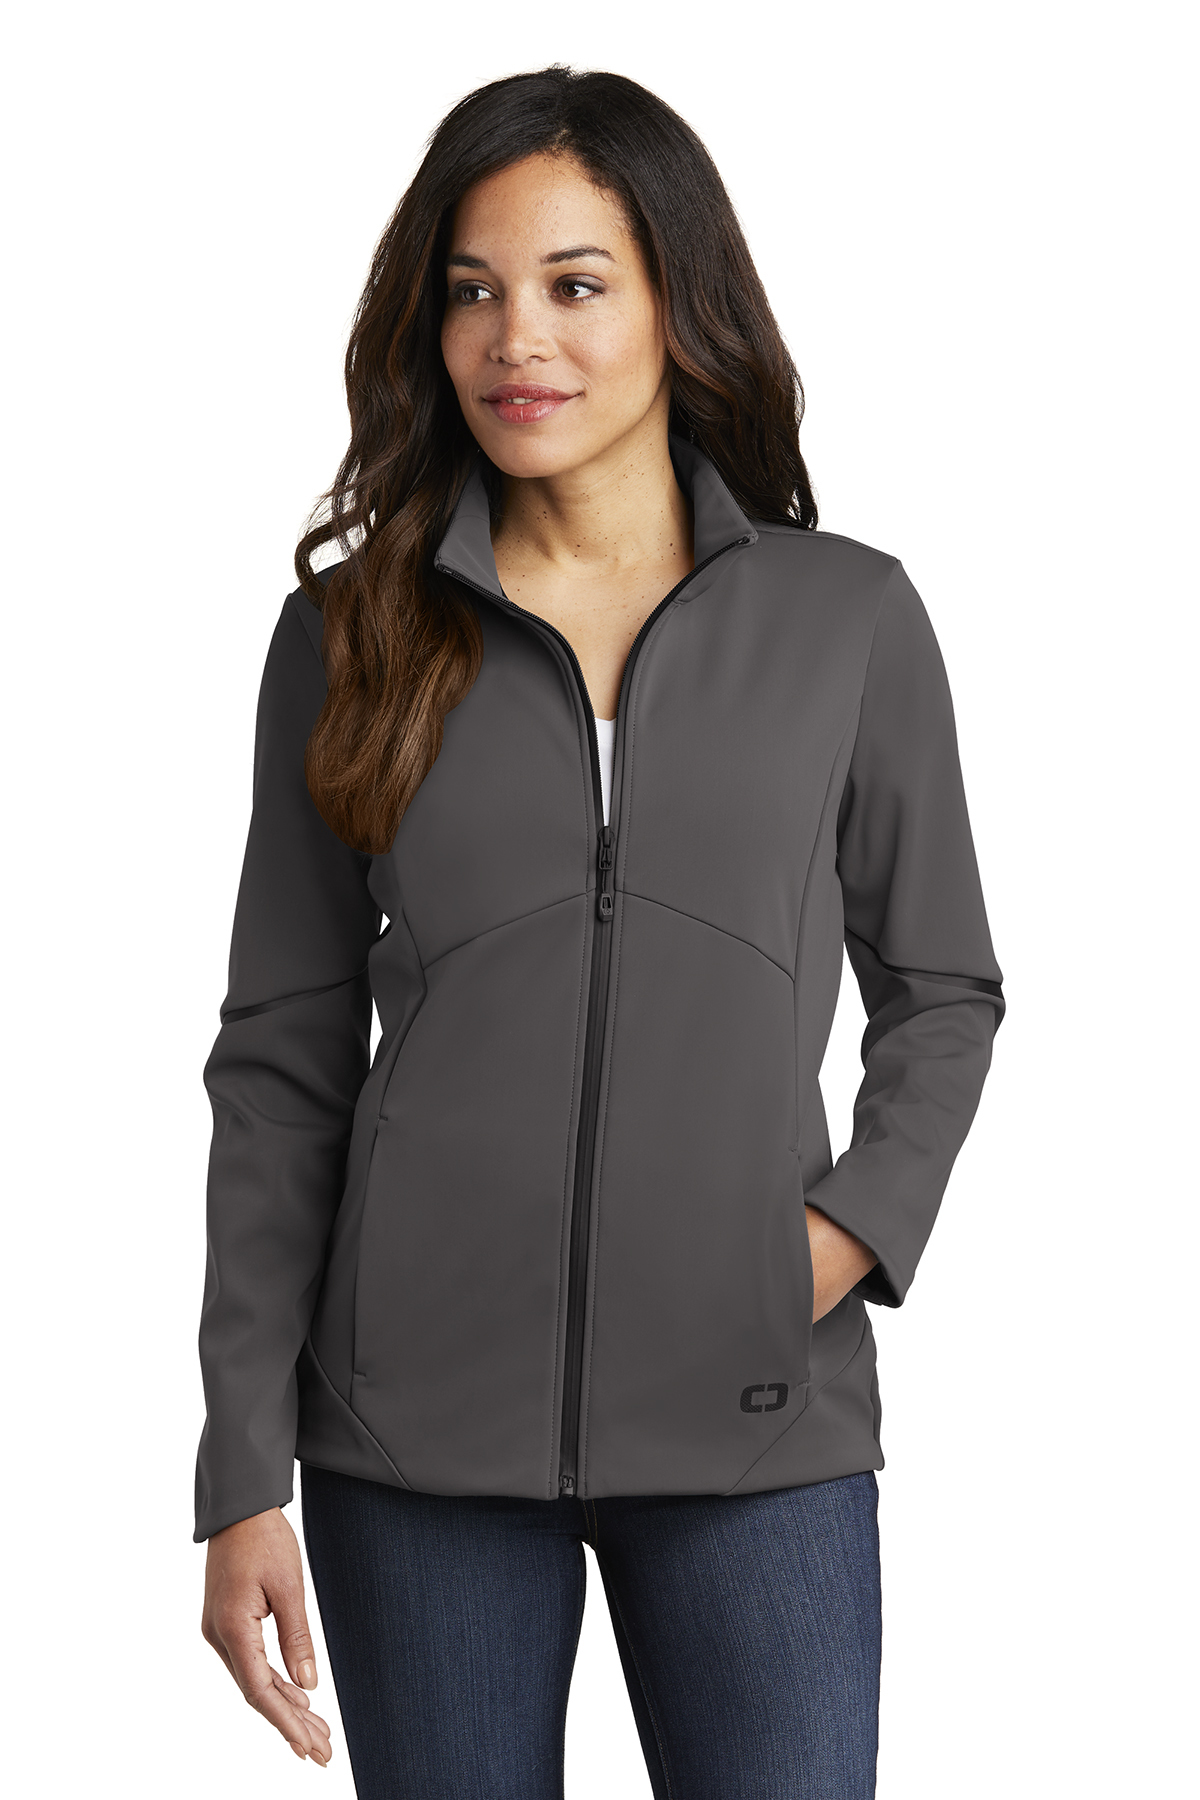 OGIO LOG725 - Ladies Exaction Soft Shell Jacket